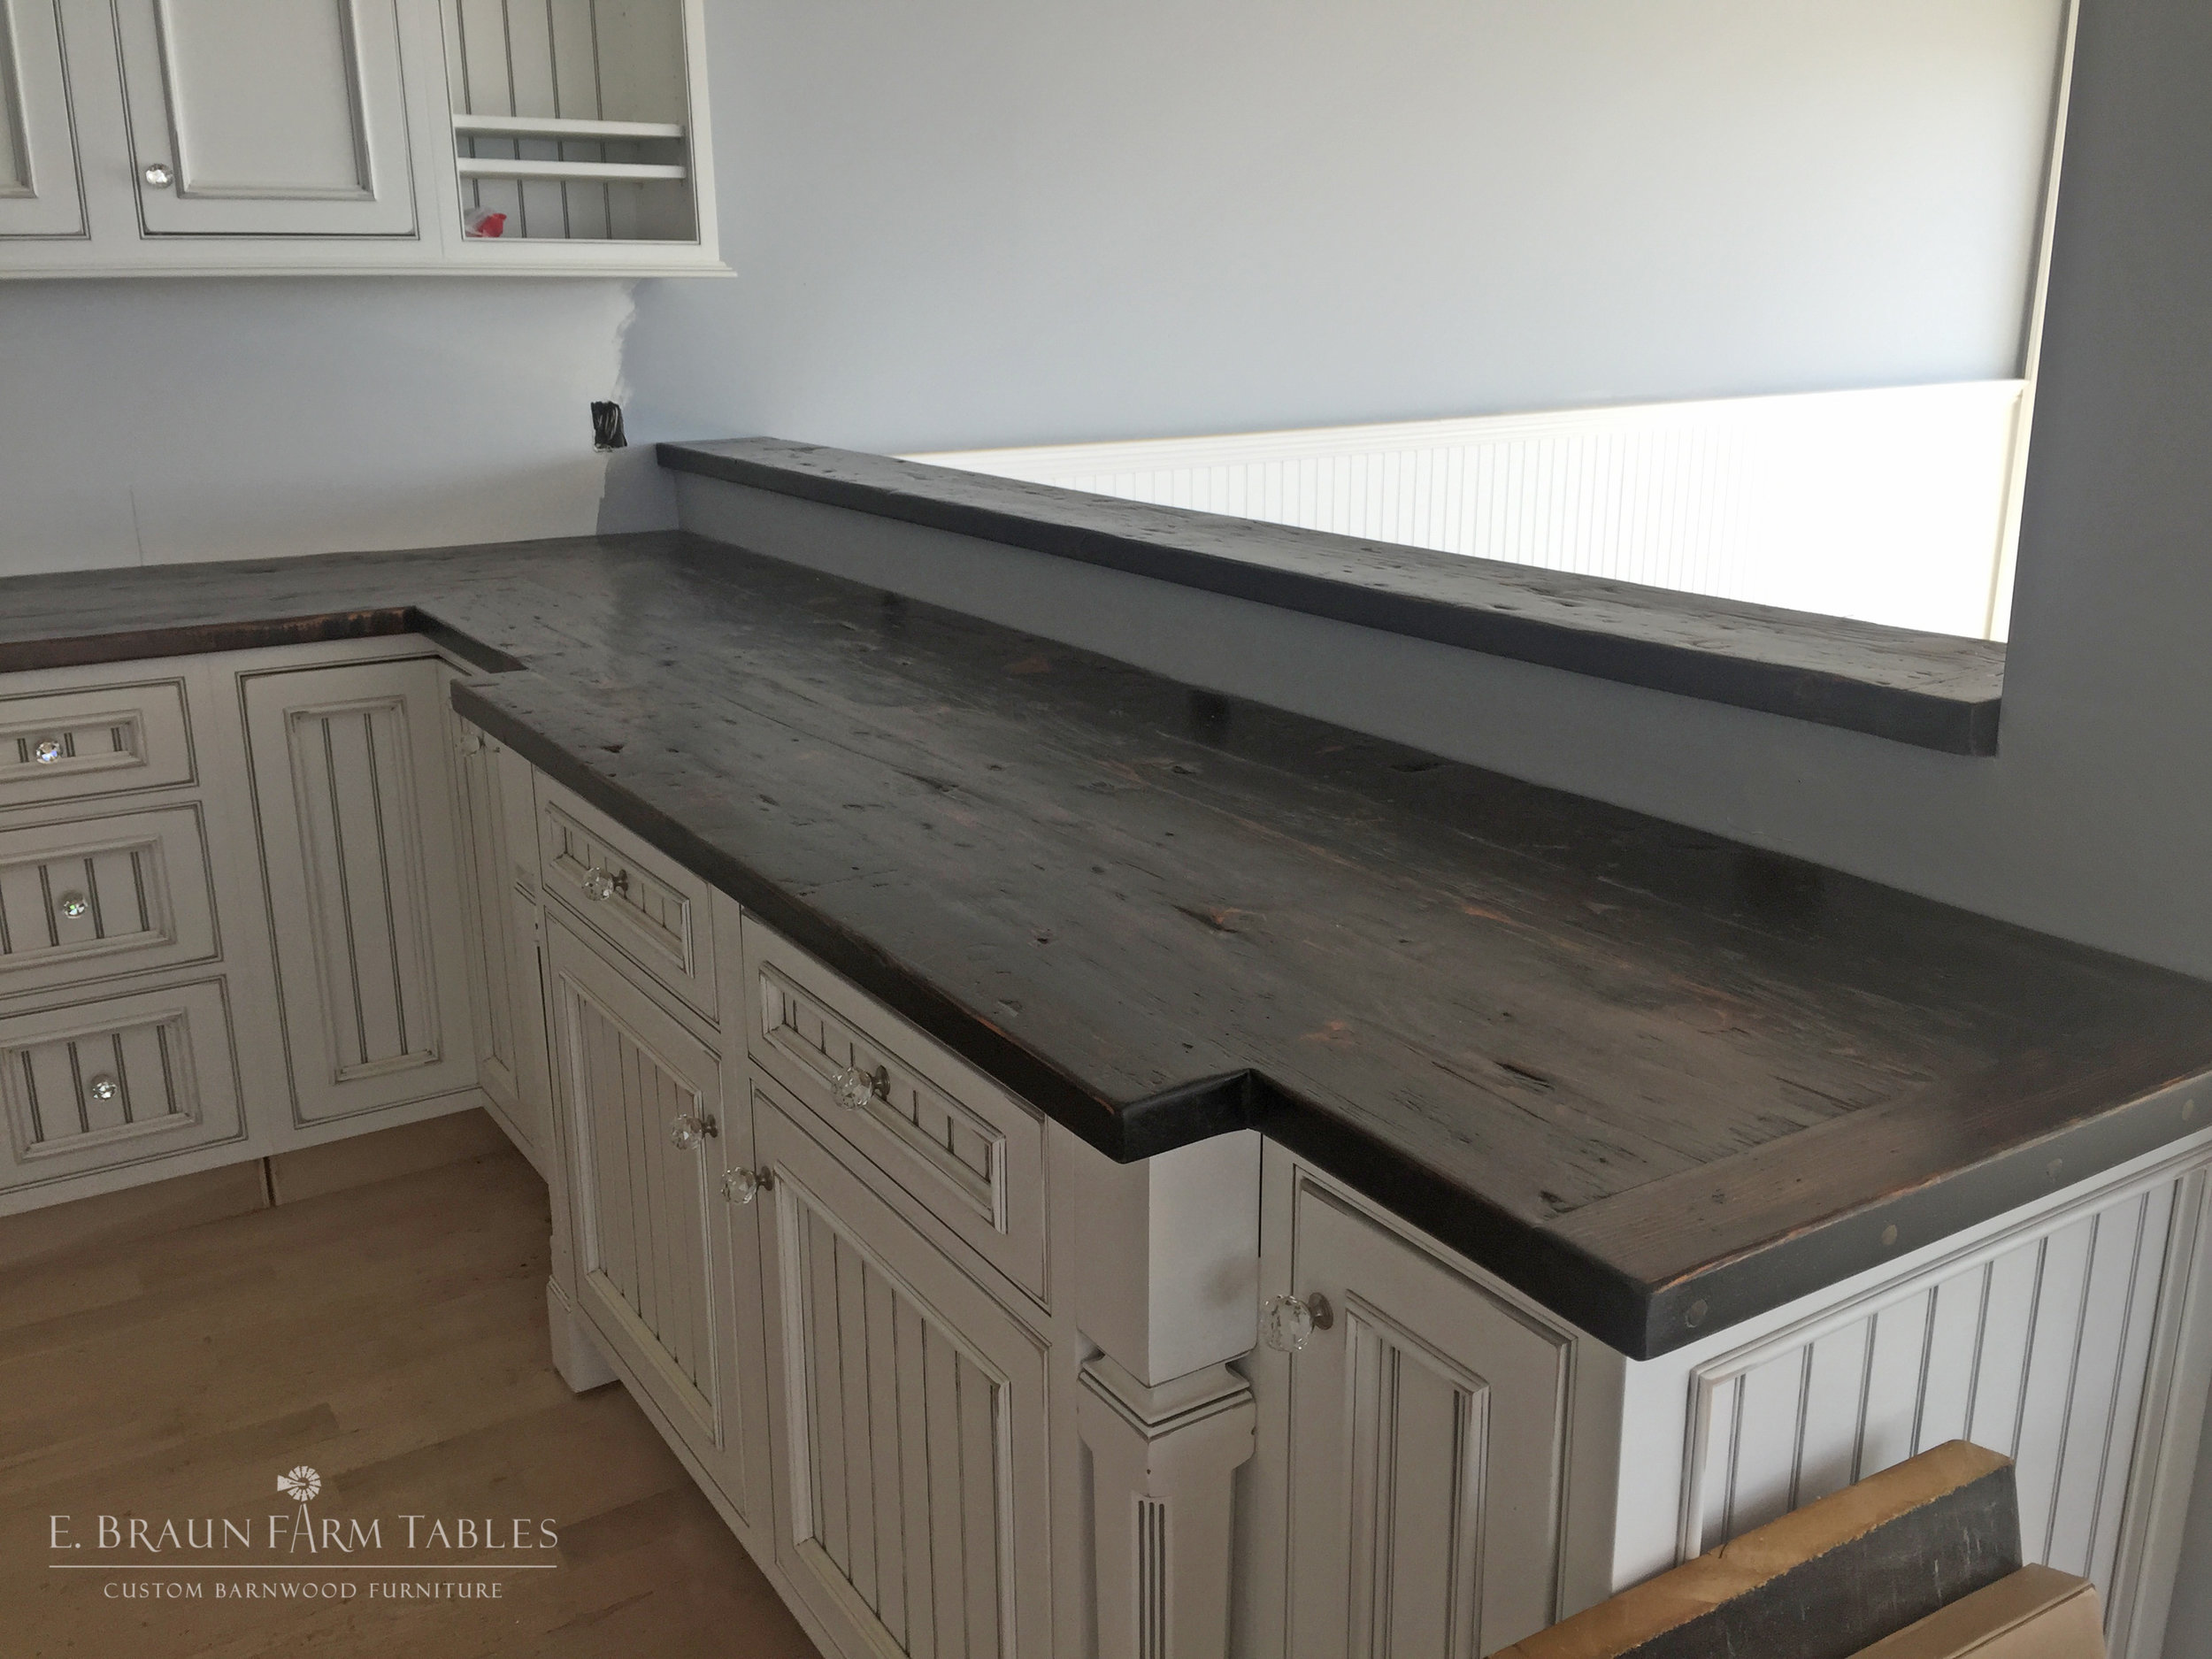 Kitchen O - Countertops Only - click to see more photos